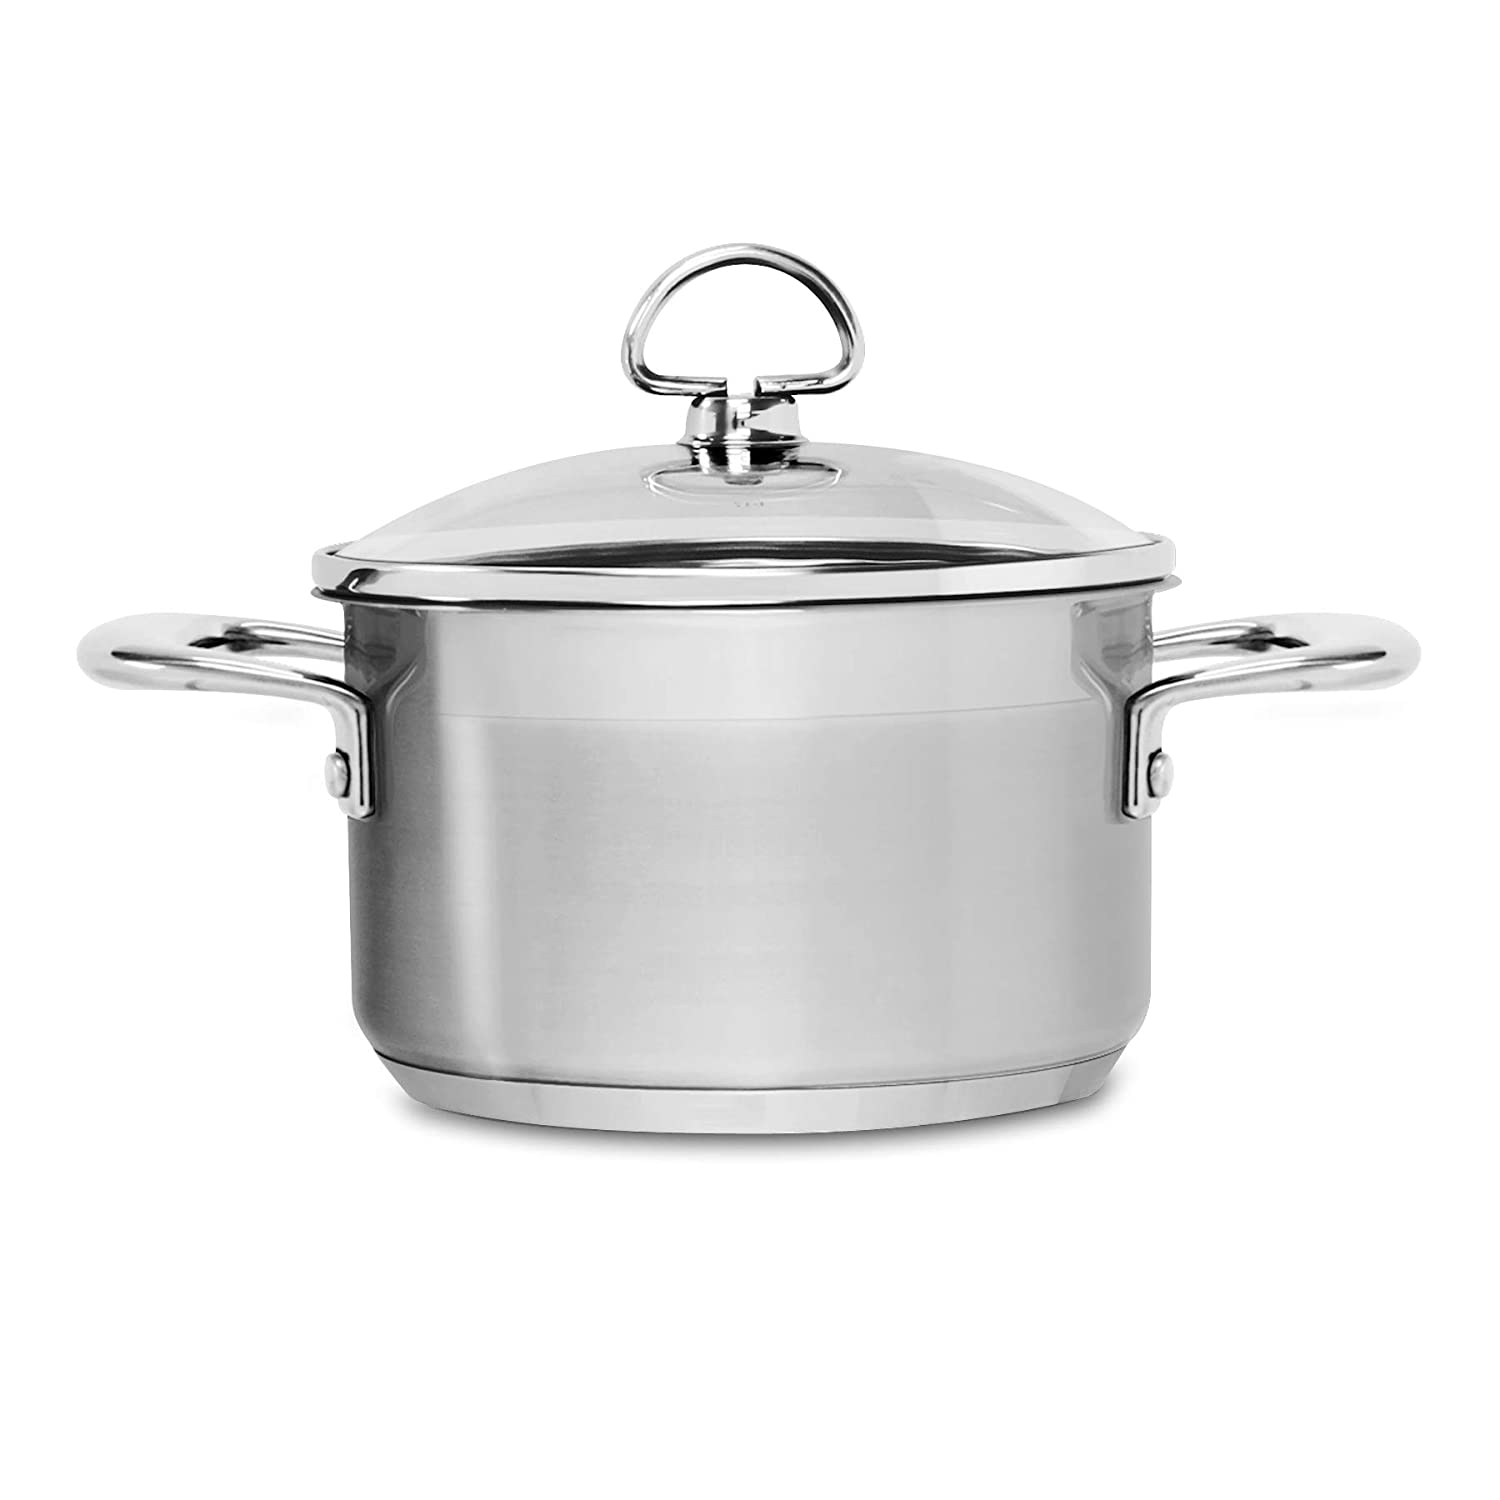 Chantal SLIN32-160 Induction 21 Steel Soup Pot with Glass Tempered Lid 2-Quart